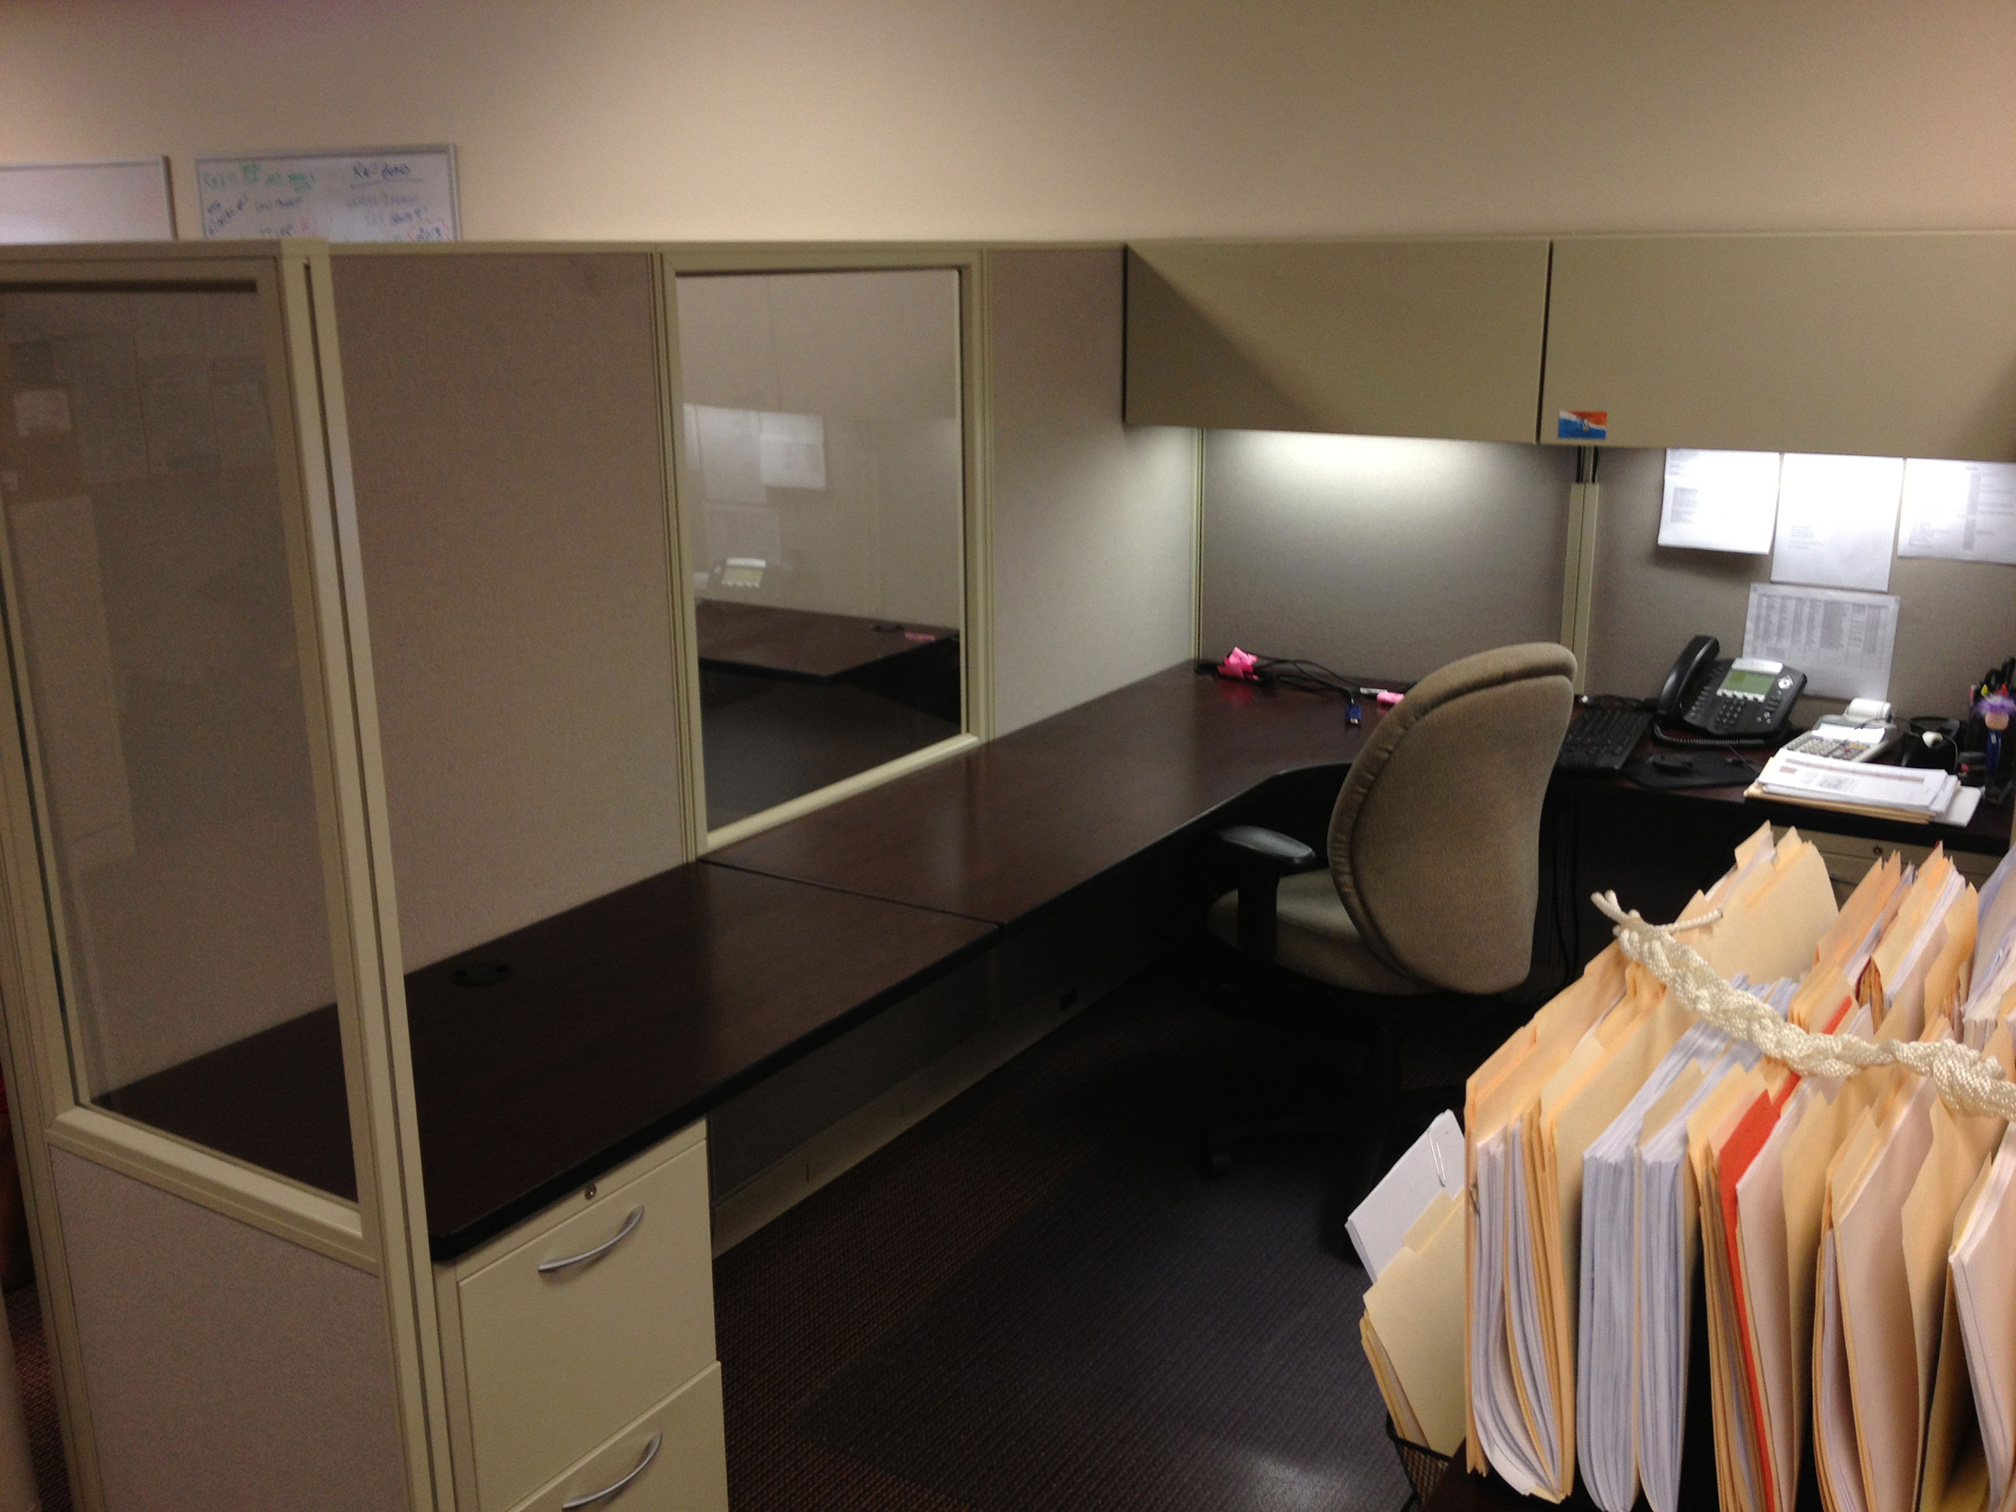 office-cubicles-for-sale-in-winter-manors-florida-2.jpg